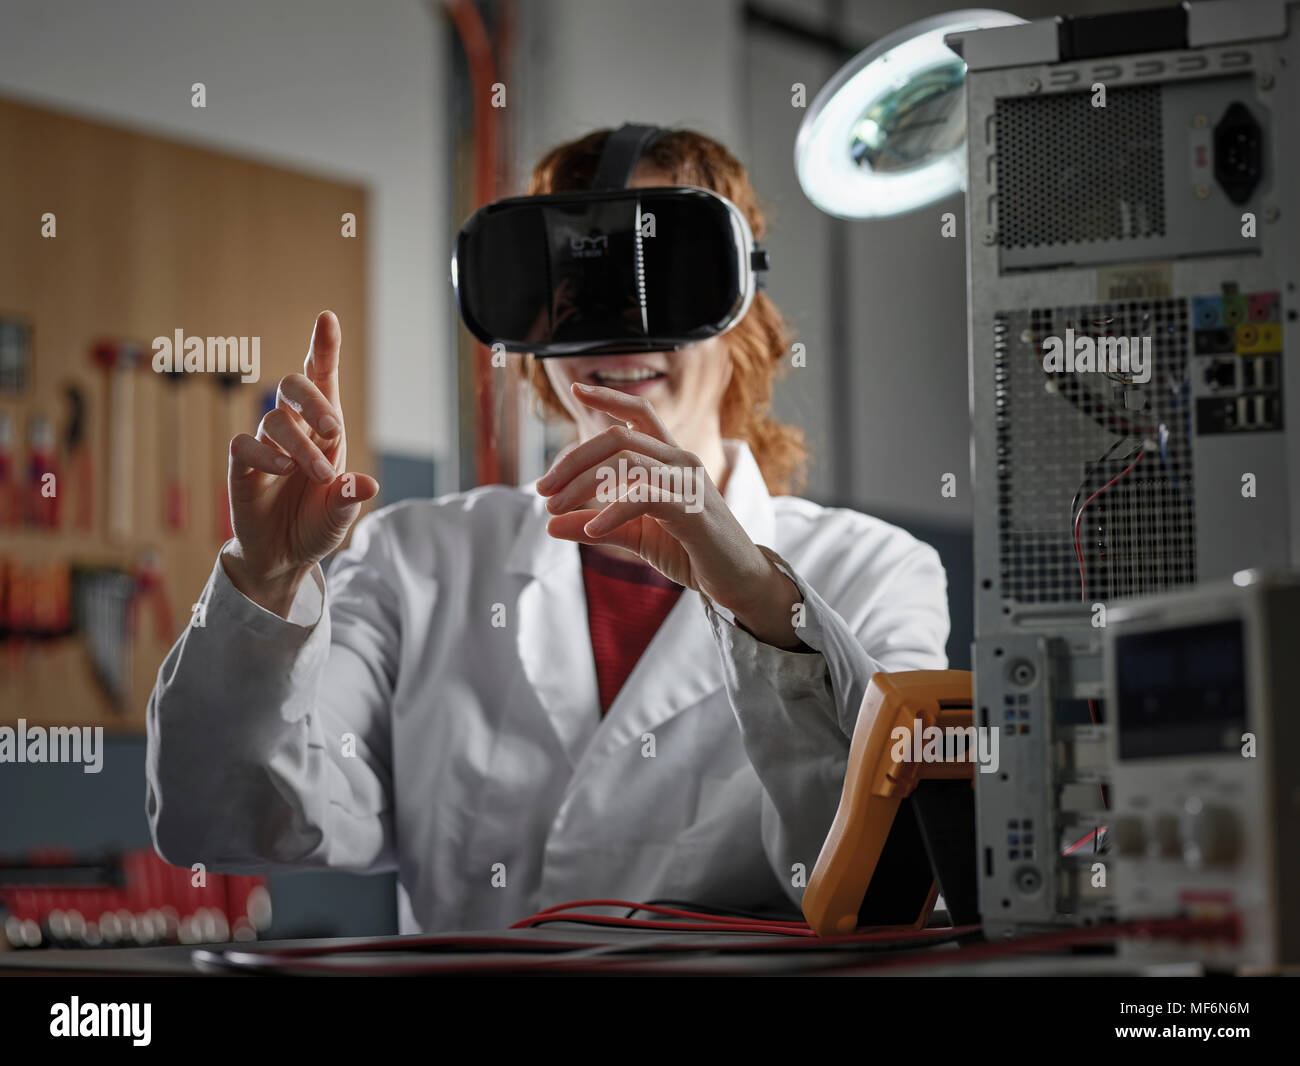 Woman with VR goggles and lab coat sitting in an electronics laboratory, Austria - Stock Image